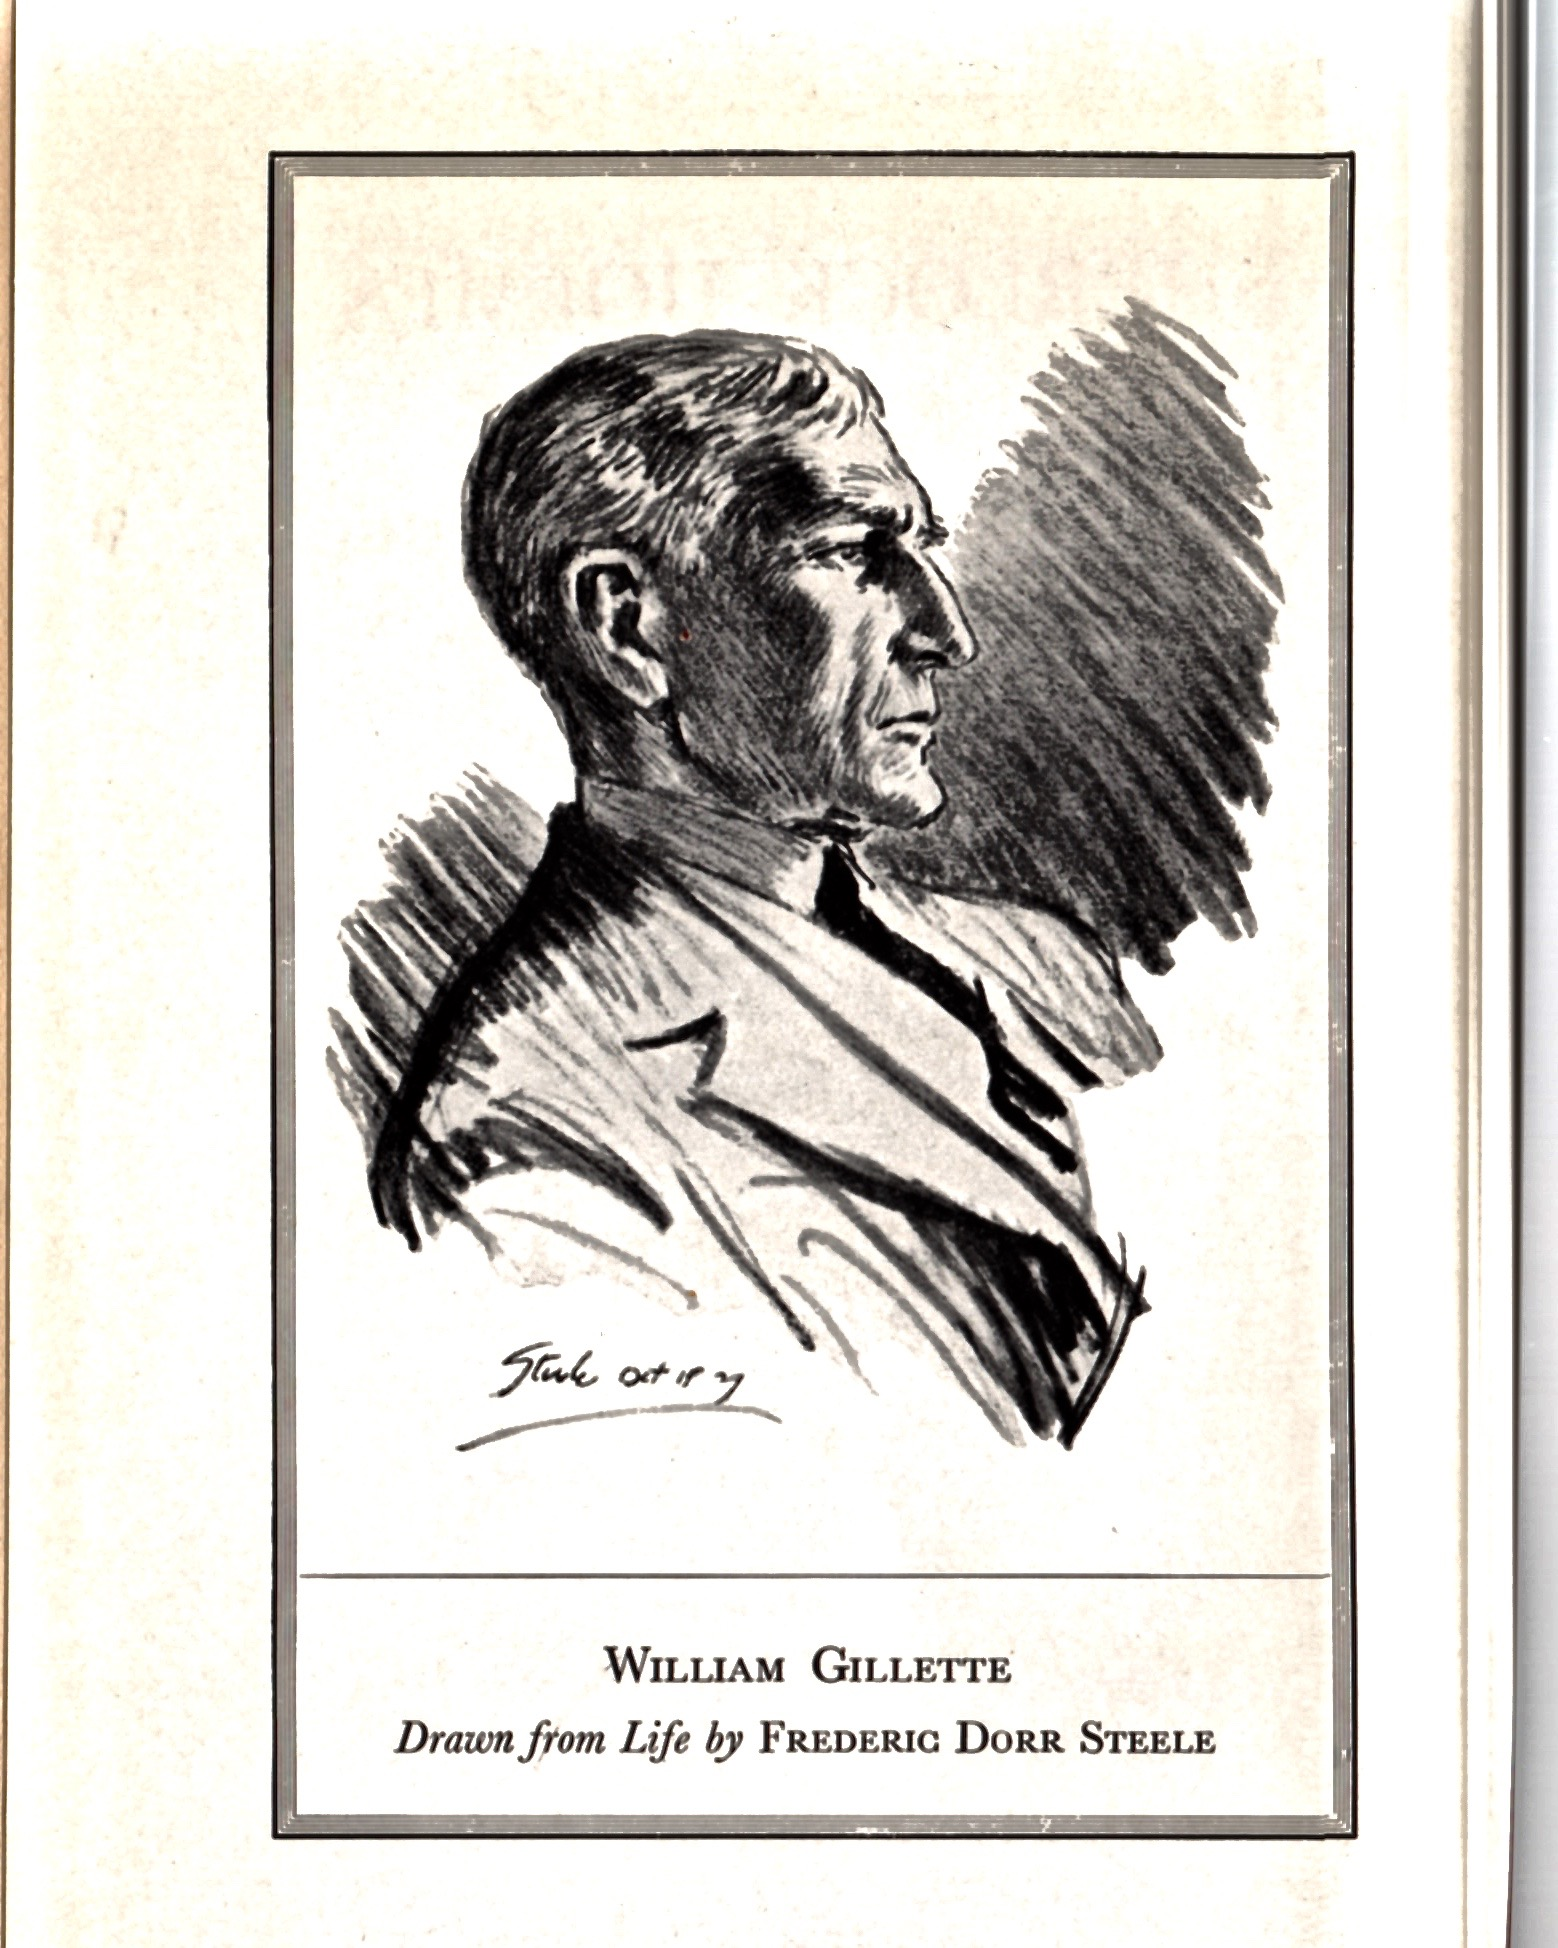 The frontispiece of the 1935 edition of Sherlock Holmes: A Play features a sketch of Gillette by Steele. It's as handsome an illustration of the great actor as was ever done.